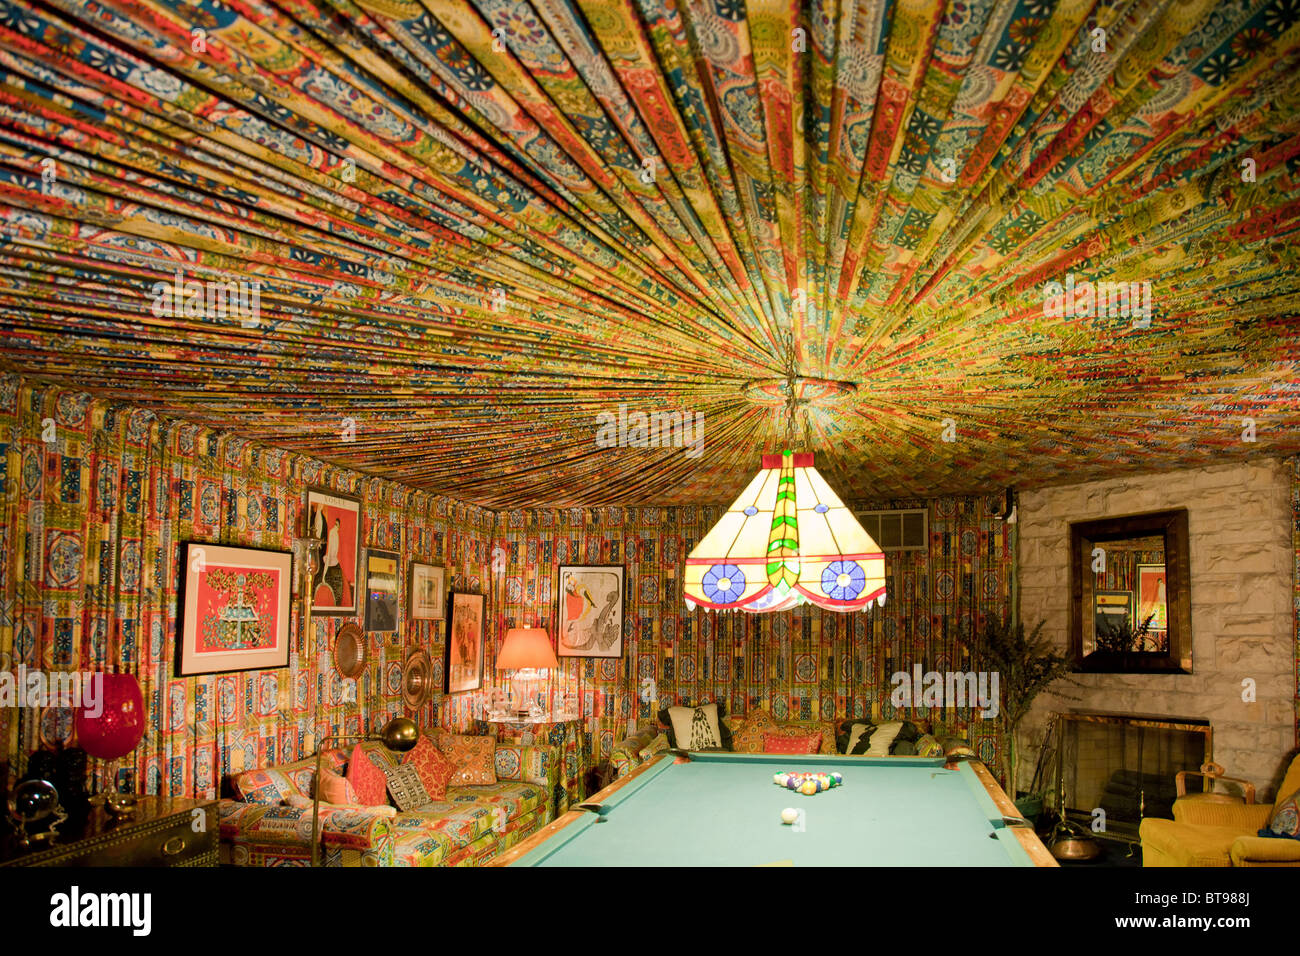 Elvis Presley's fabric-lined pool room at Graceland, Memphis, Tennessee, USA - Stock Image